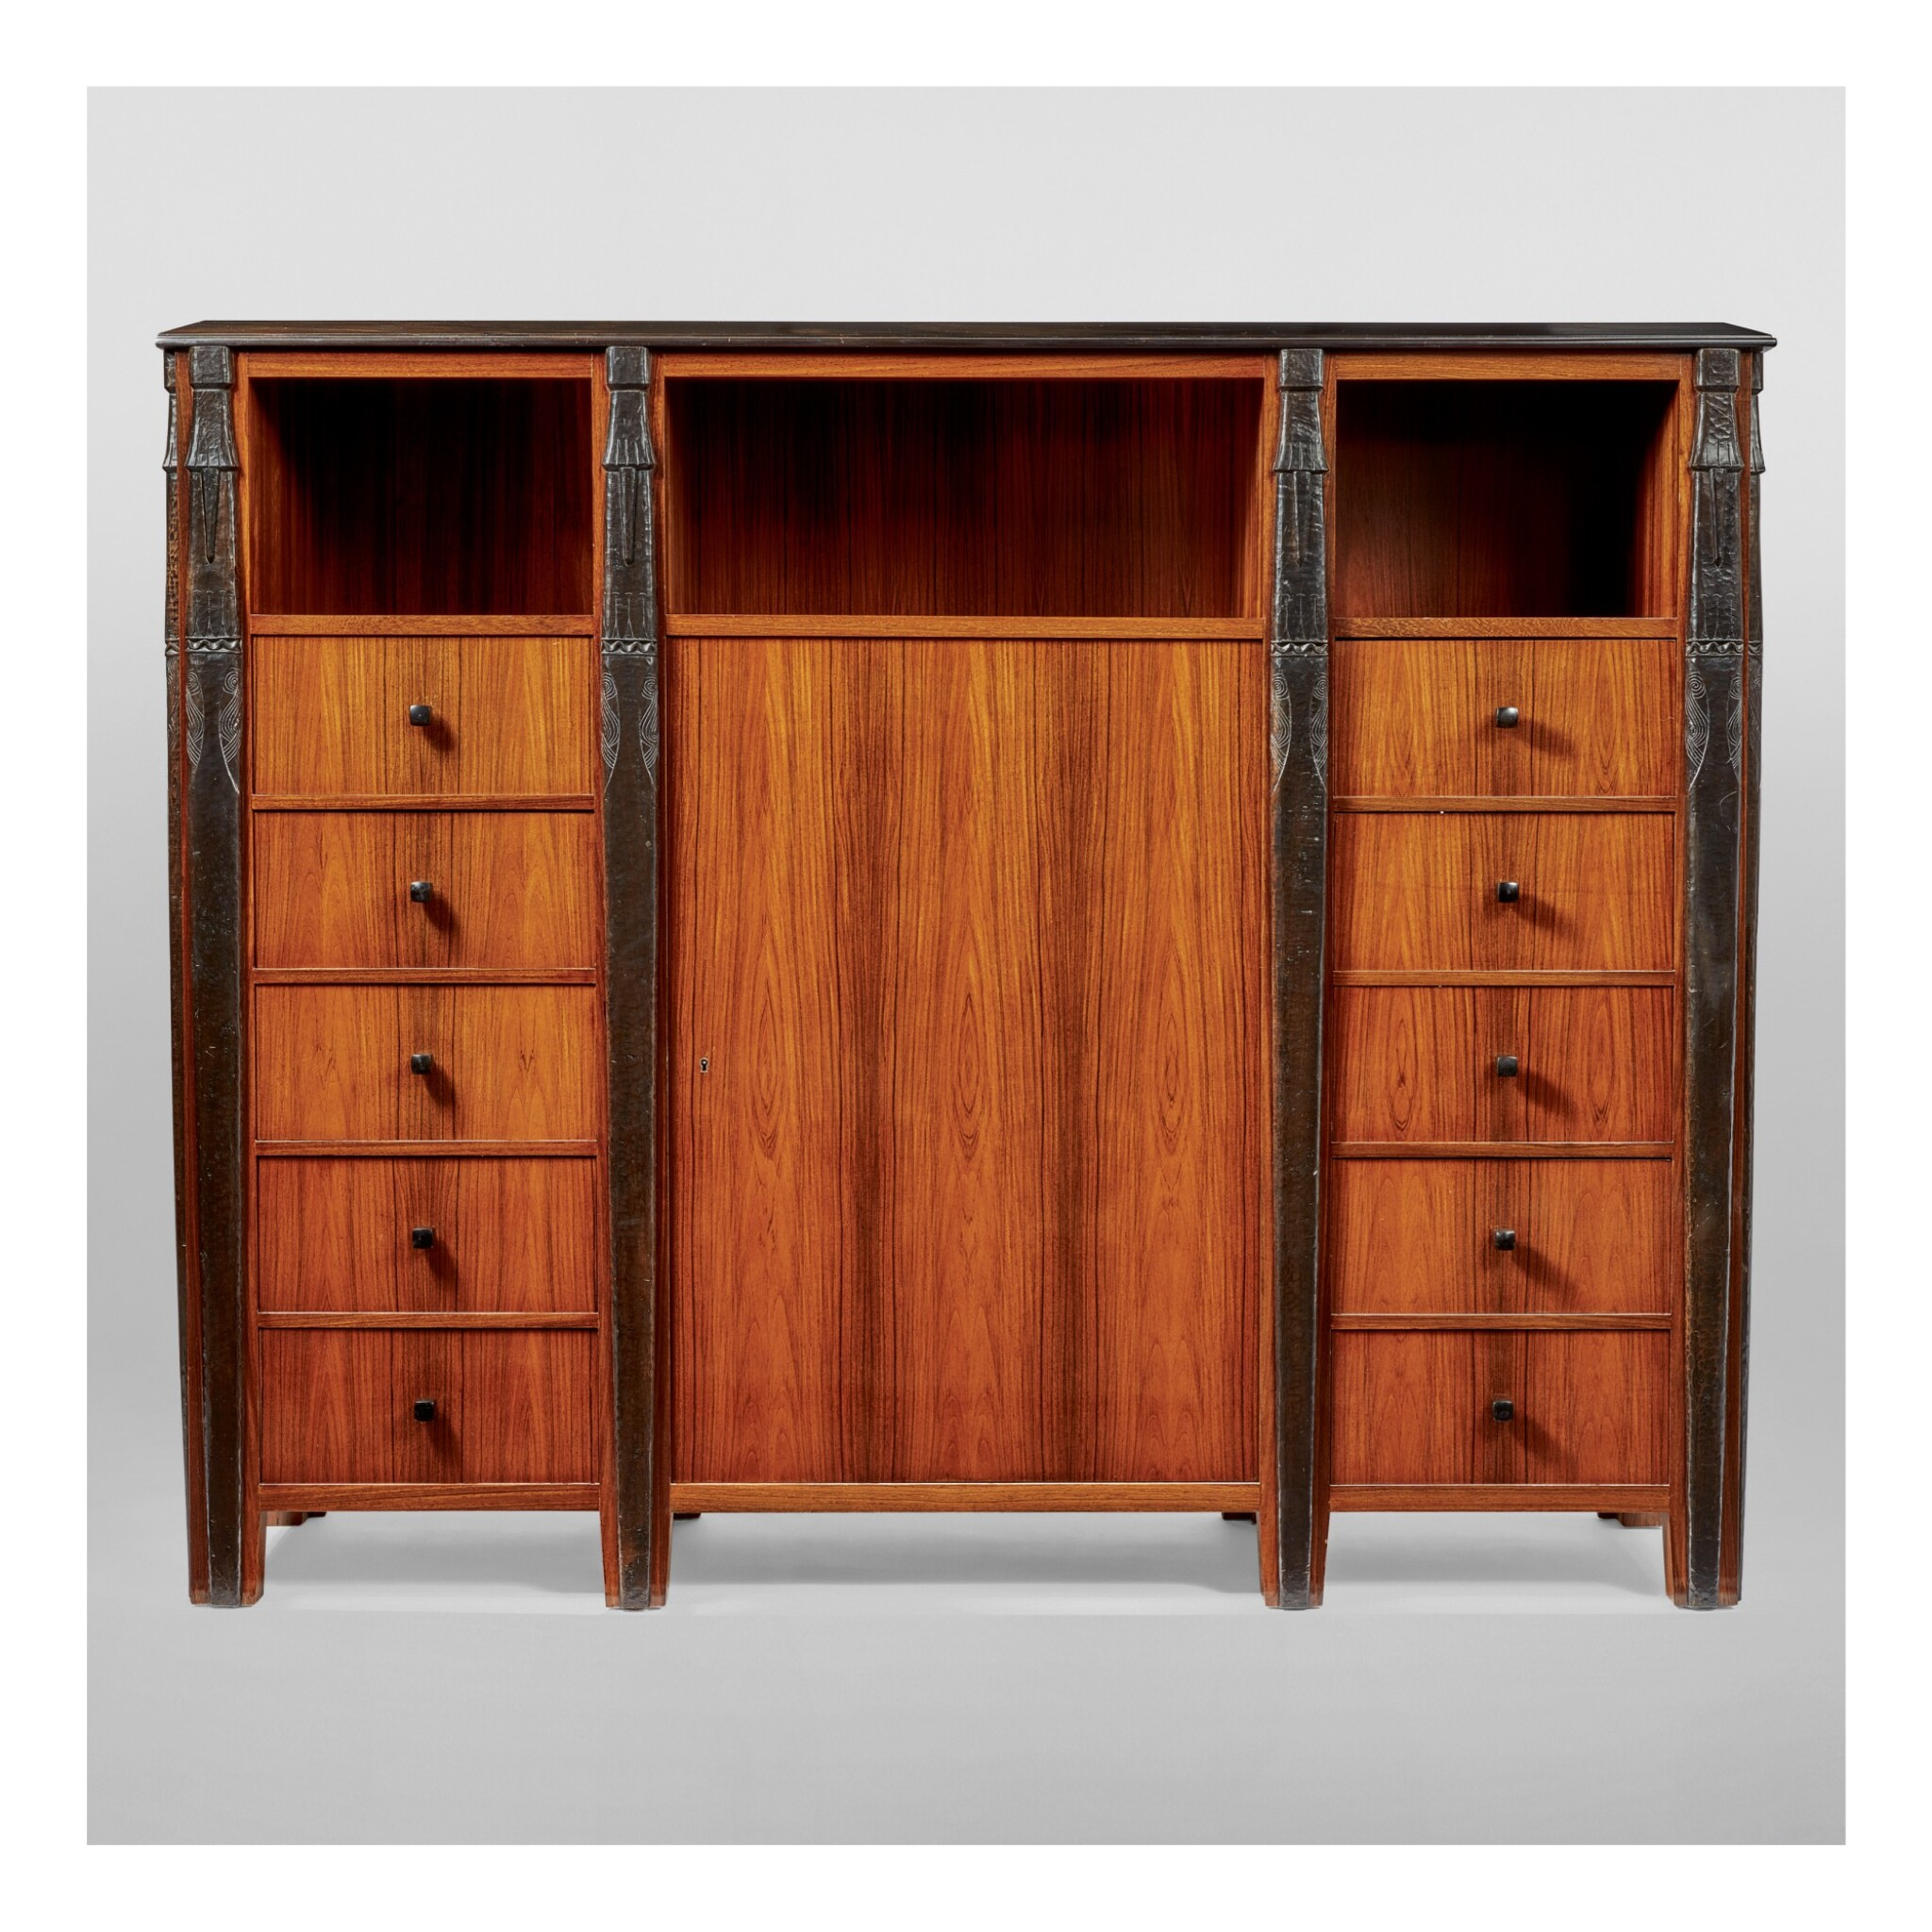 View 1 of Lot 4. Cabinet.